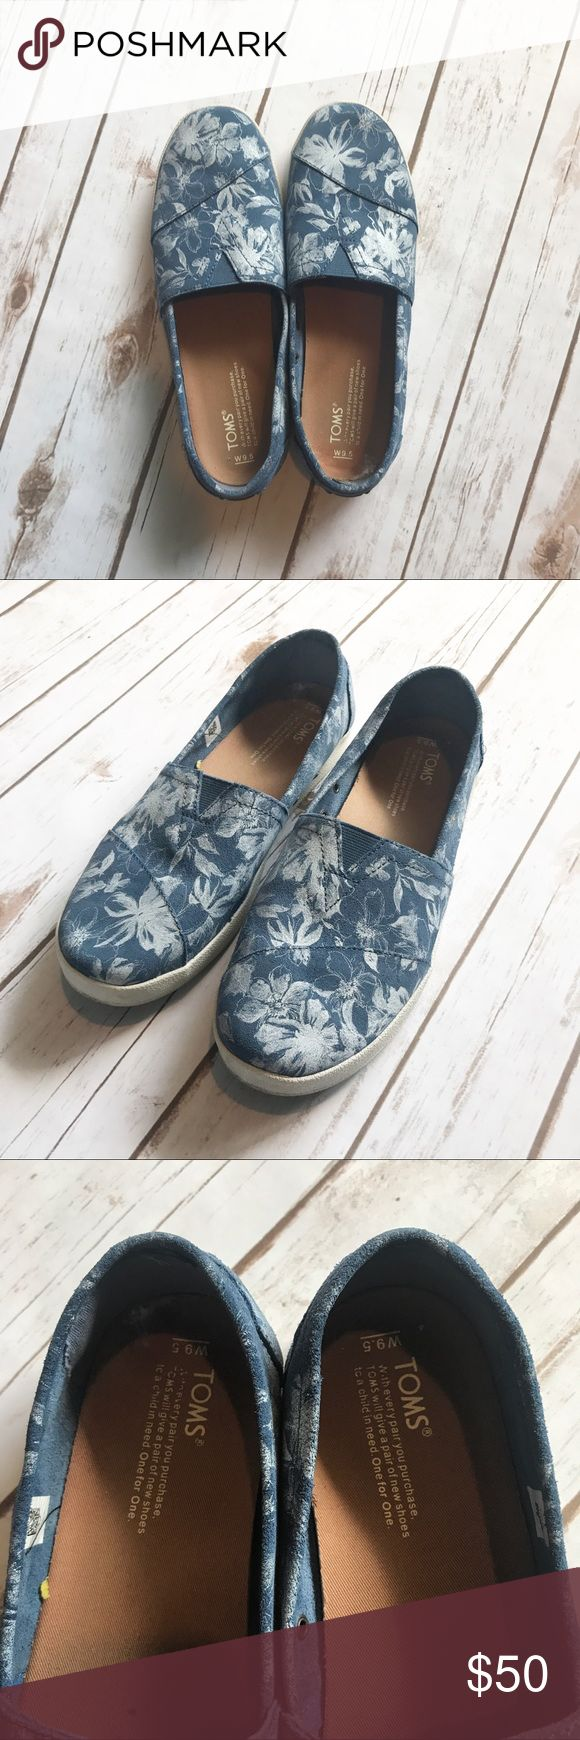 TOMS Slip-ons - White & Blue Floral Size 9.5 floral Toms slides. These are pre-worn but in great shape. See photos for any wear. Insoles in tact, one has some marks. TOMS Shoes Flats & Loafers